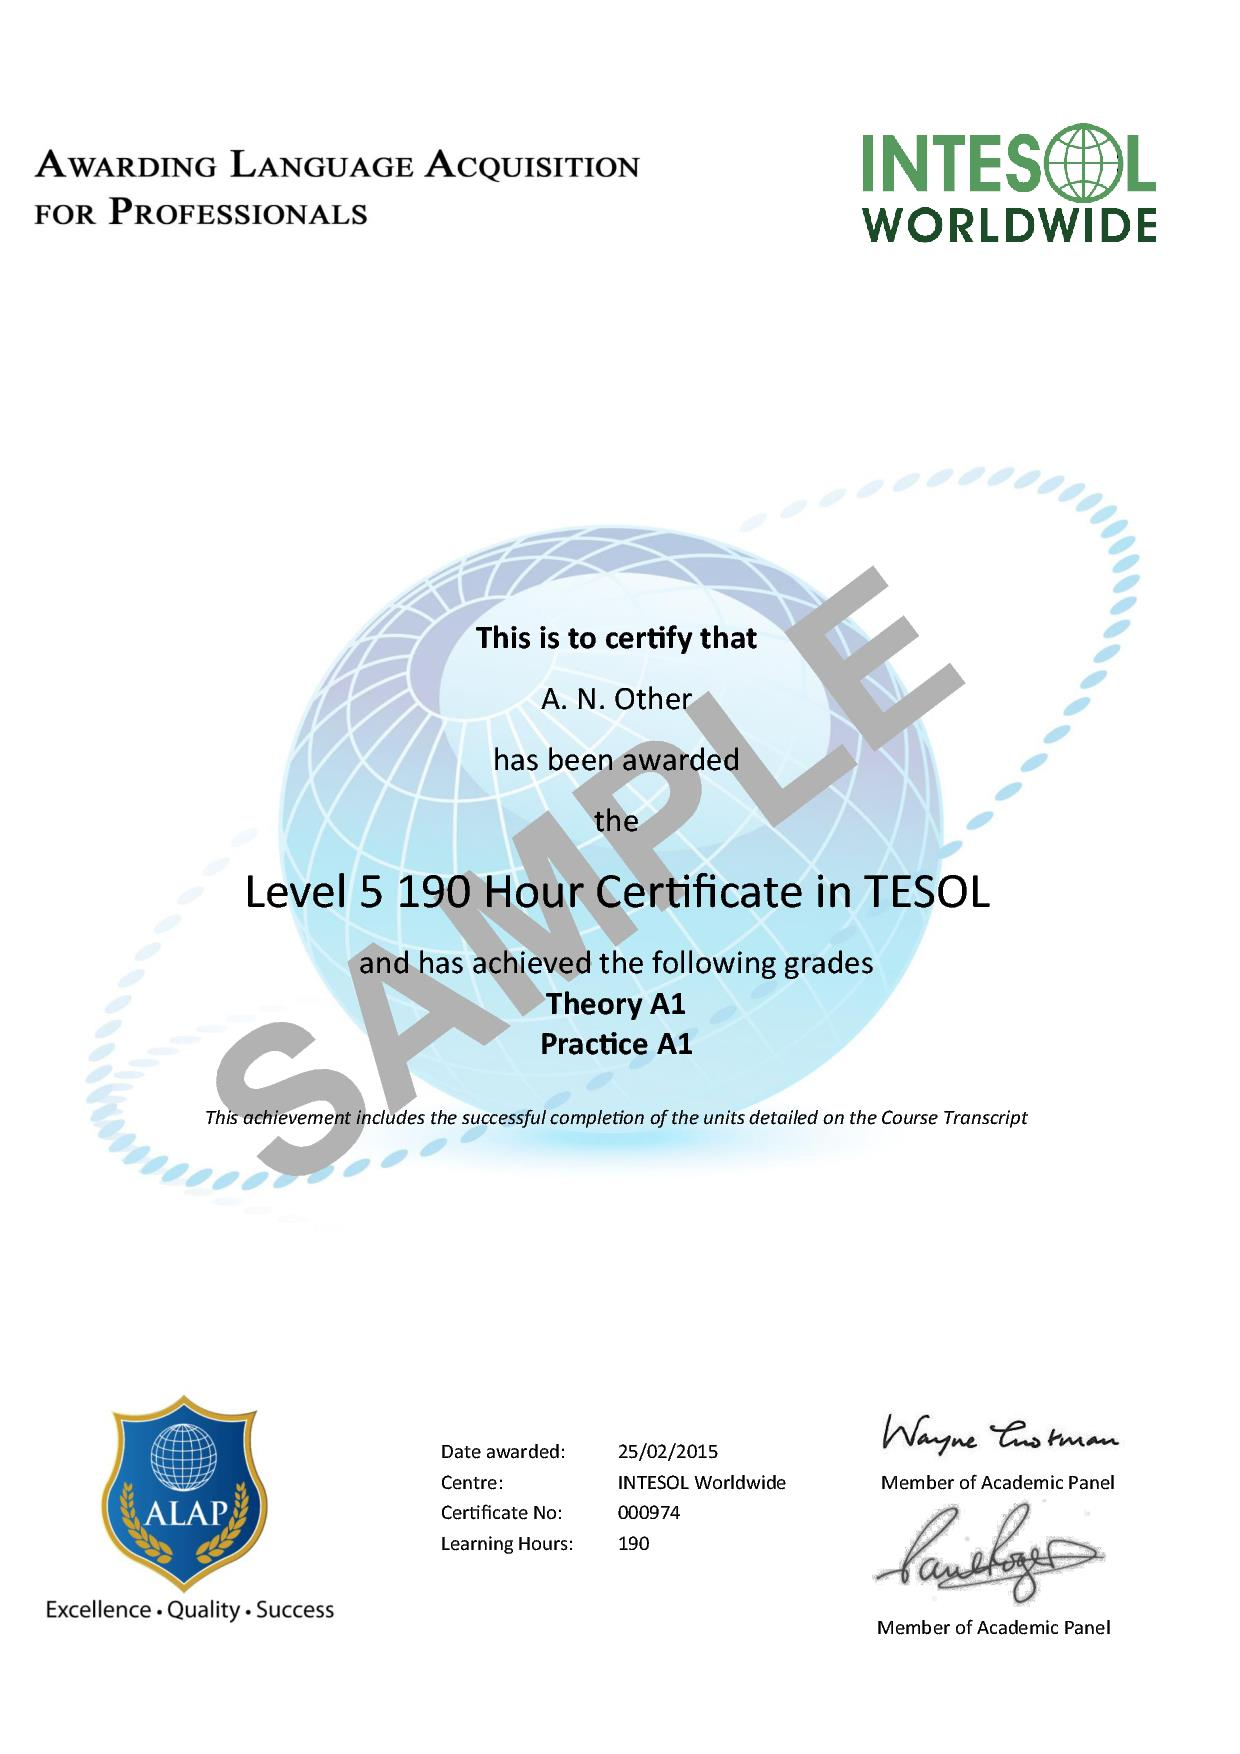 Uk Accreditation Online Tesoltefl Course In Japan Teach English